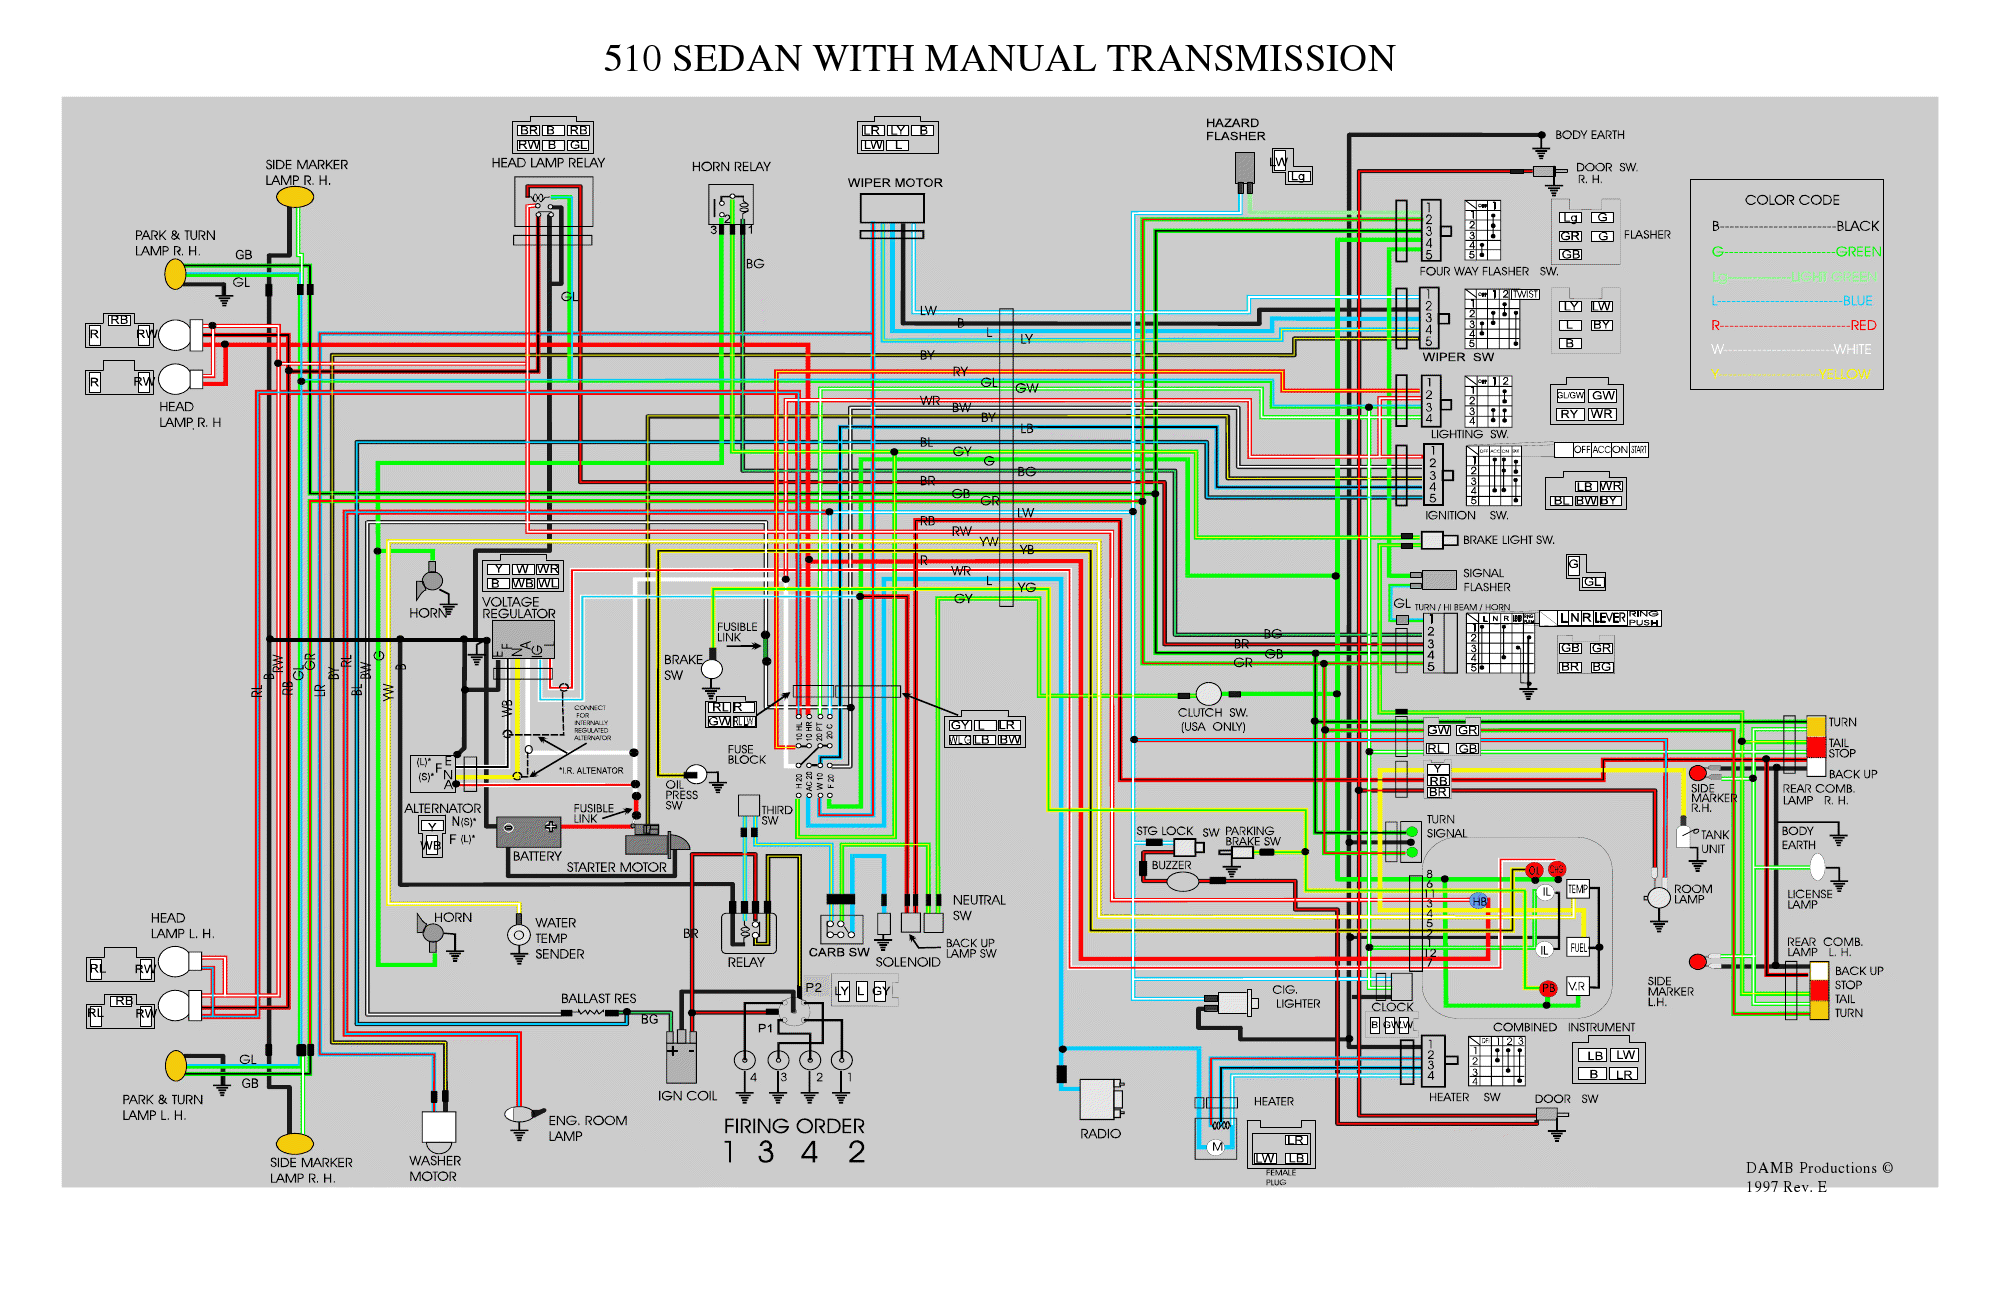 ez wiring diagram ez image wiring diagram datsun 510 wiring diagram z car on ez wiring diagram